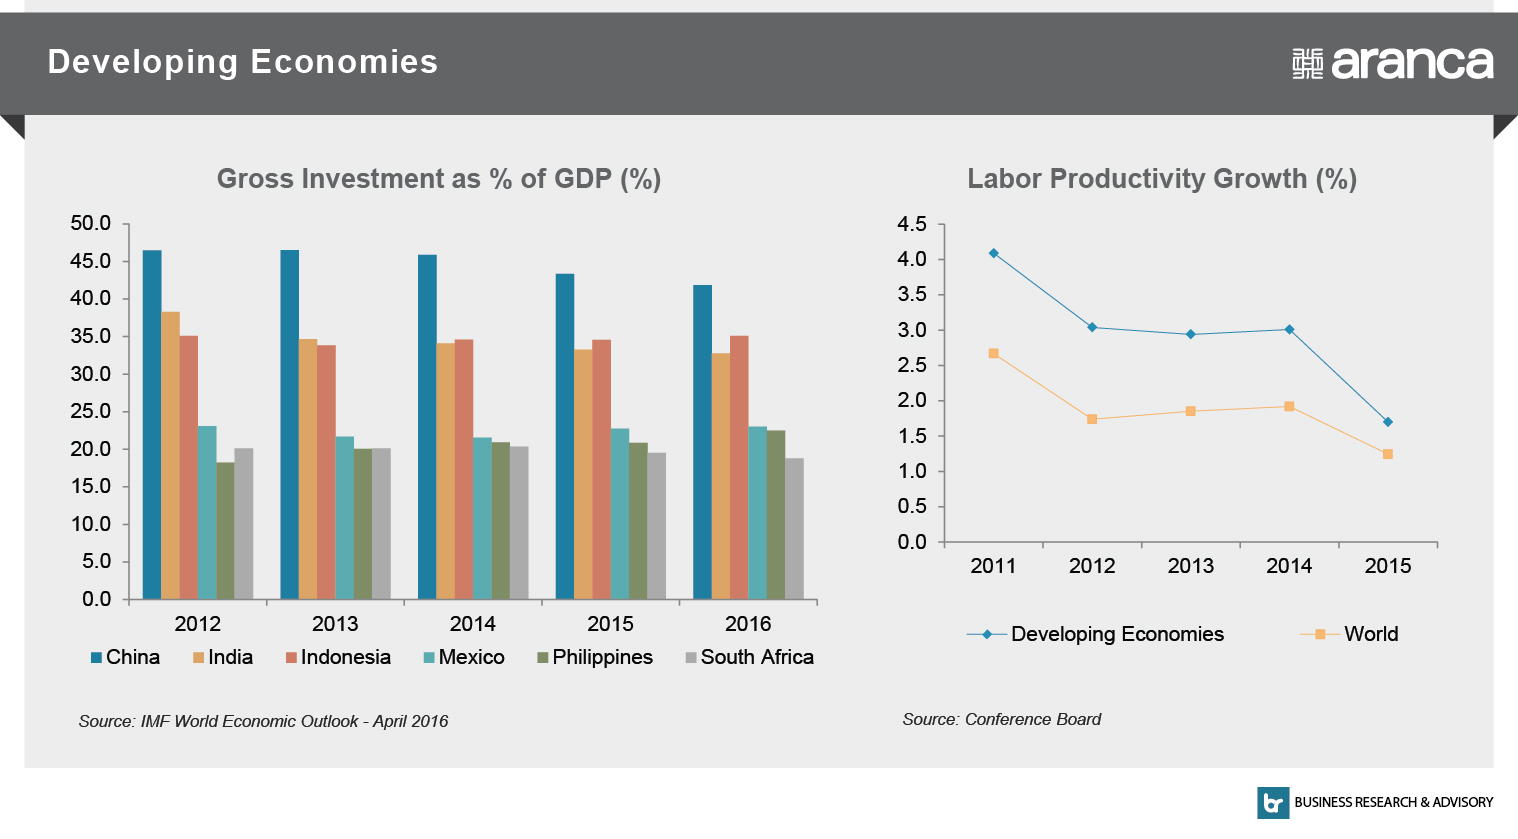 Developing Economies - Gross Investment